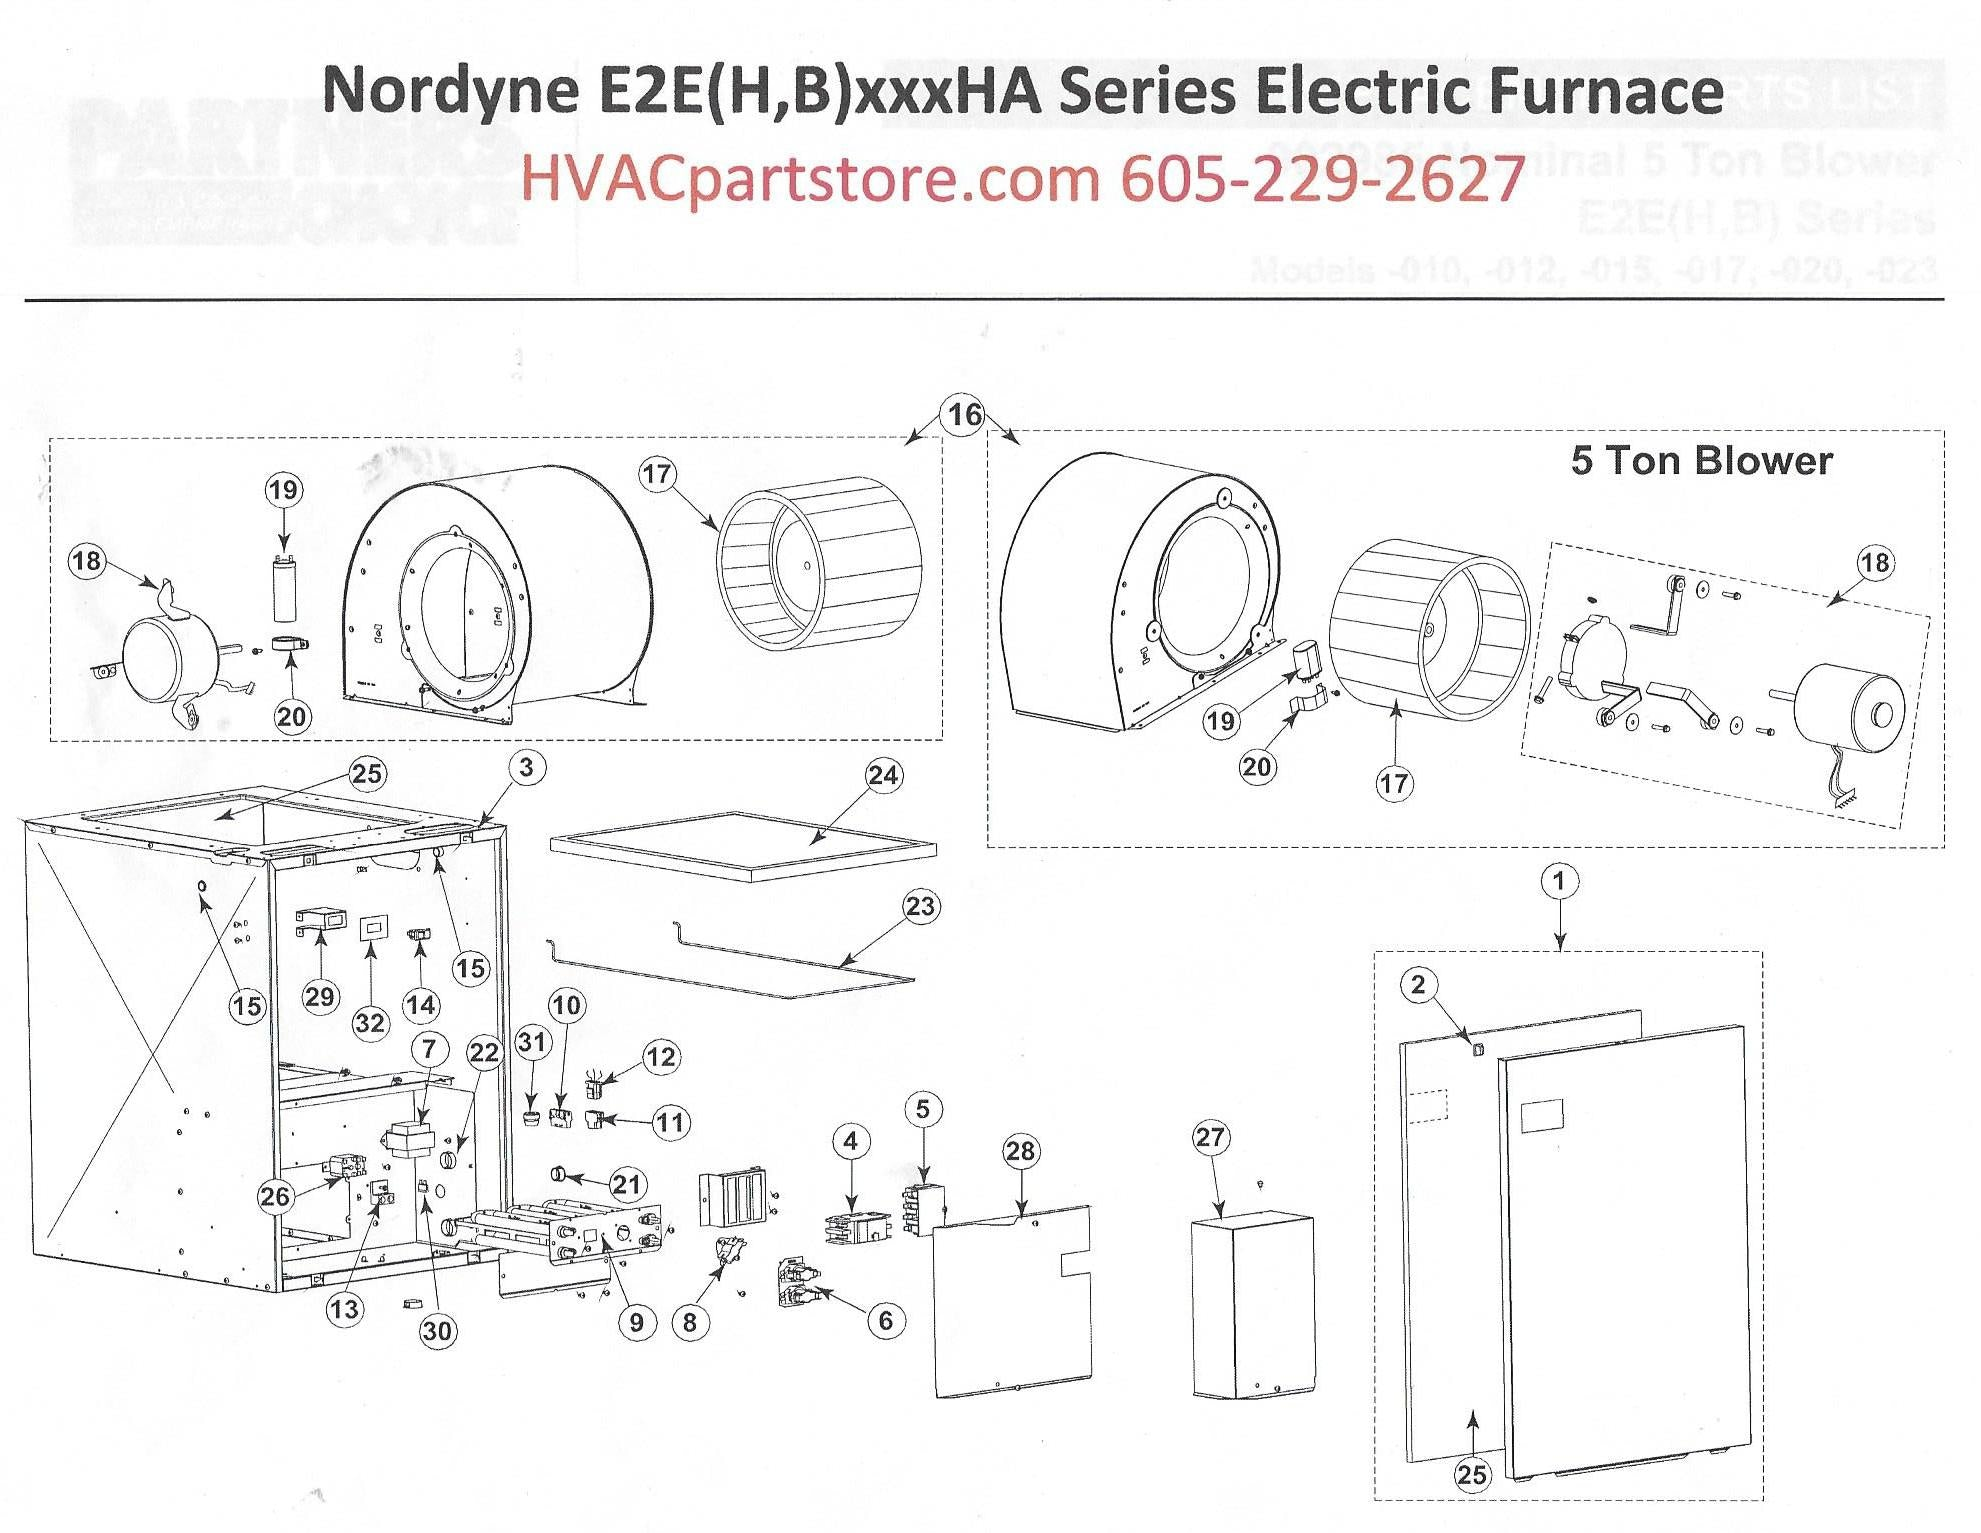 e2eb 012hb wiring diagram e2eb image wiring diagram e2eb012hb nordyne electric furnace parts hvacpartstore on e2eb 012hb wiring diagram